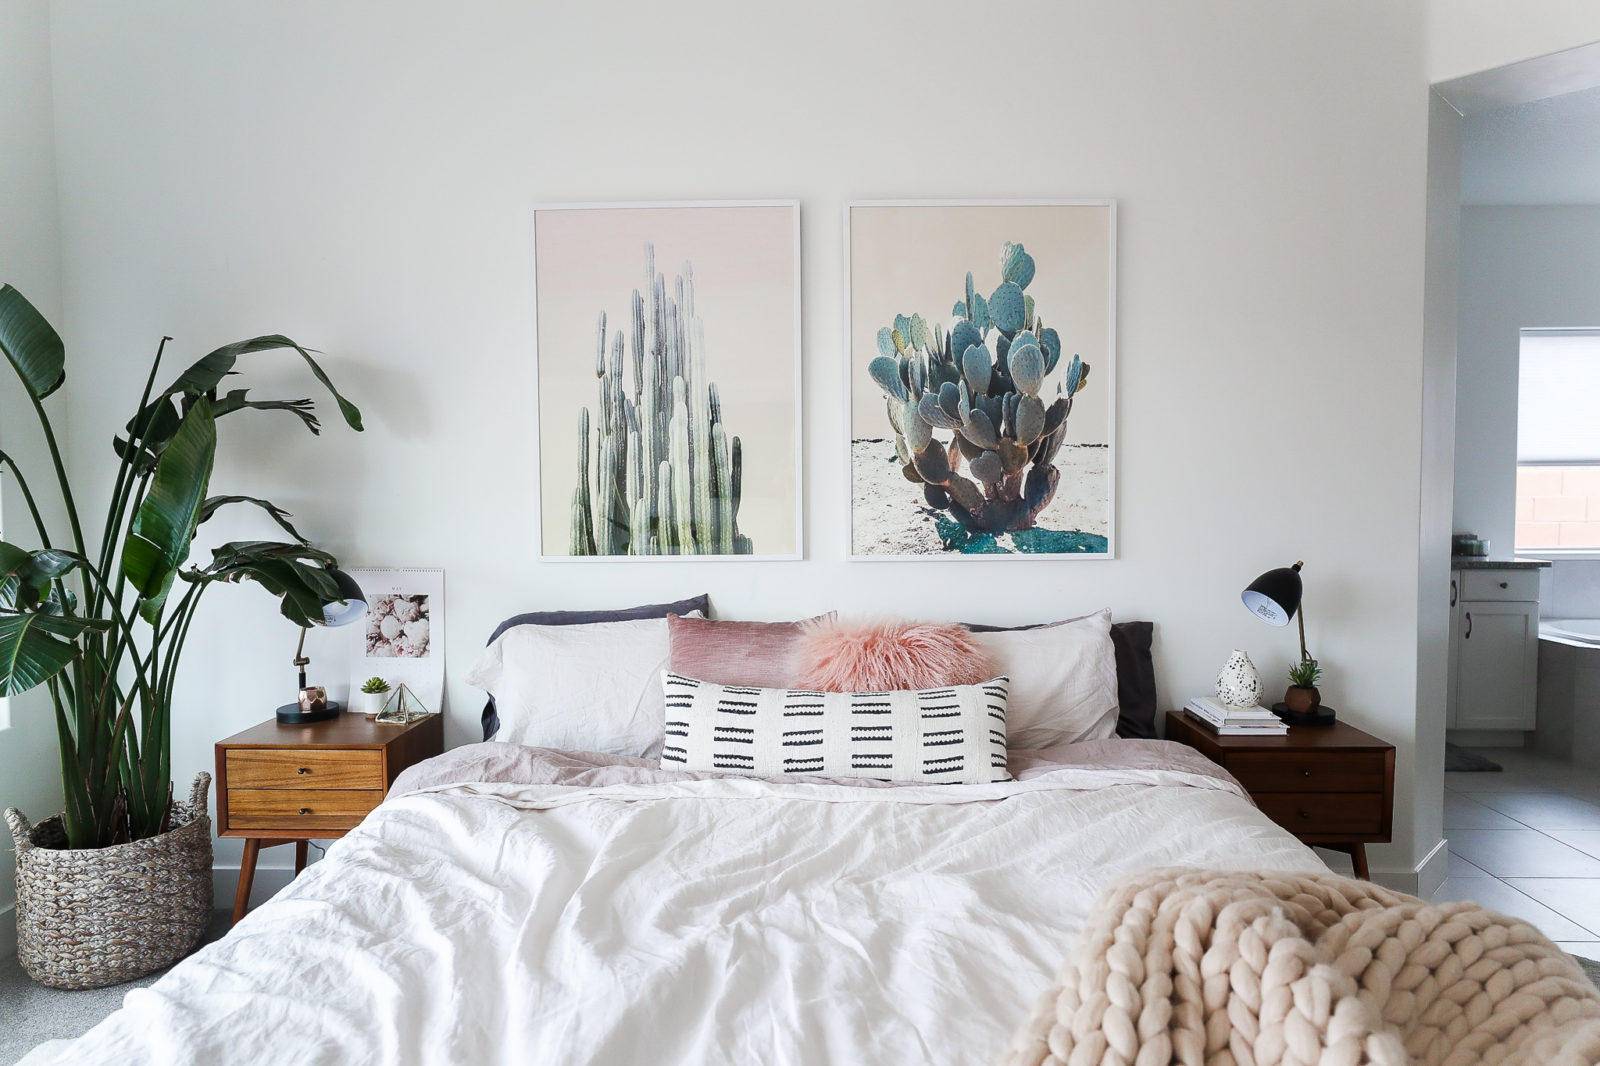 Room tour 2017 aspyn ovard bloglovin - Bedroom decor pinterest ...